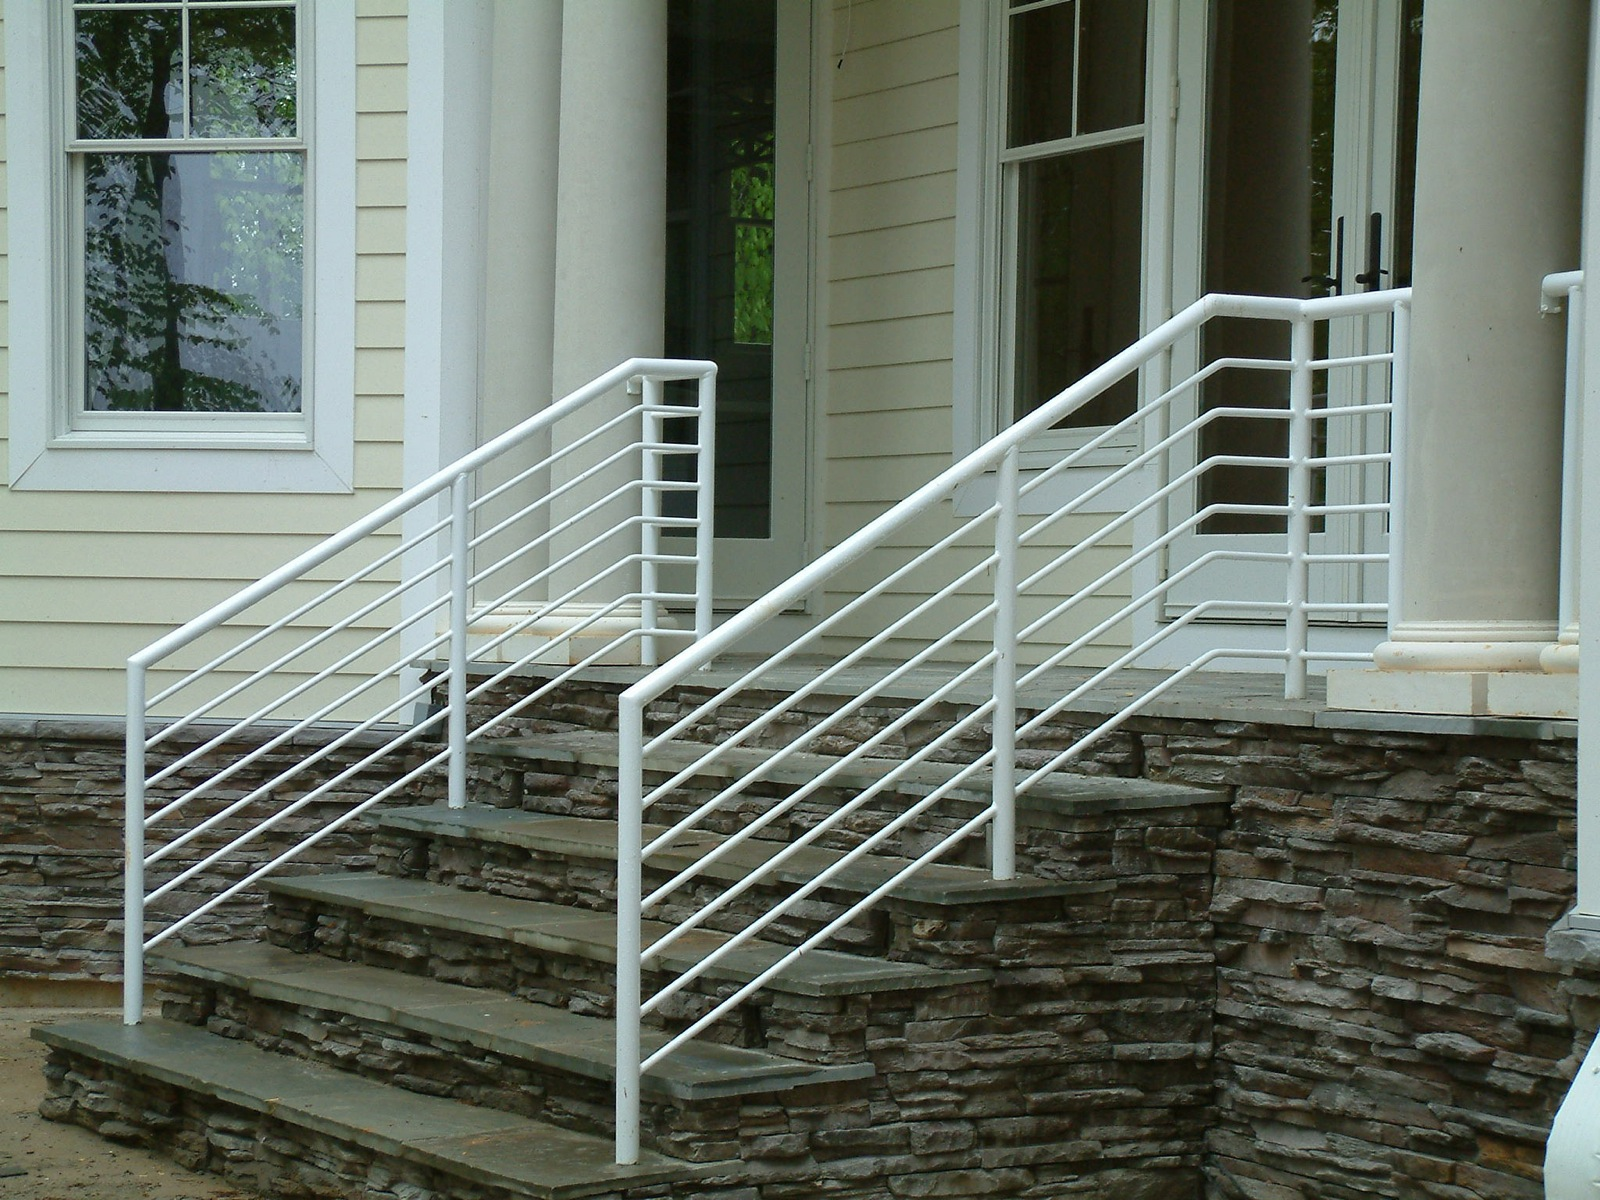 Aluminum pipe rail with horizontal solid rods